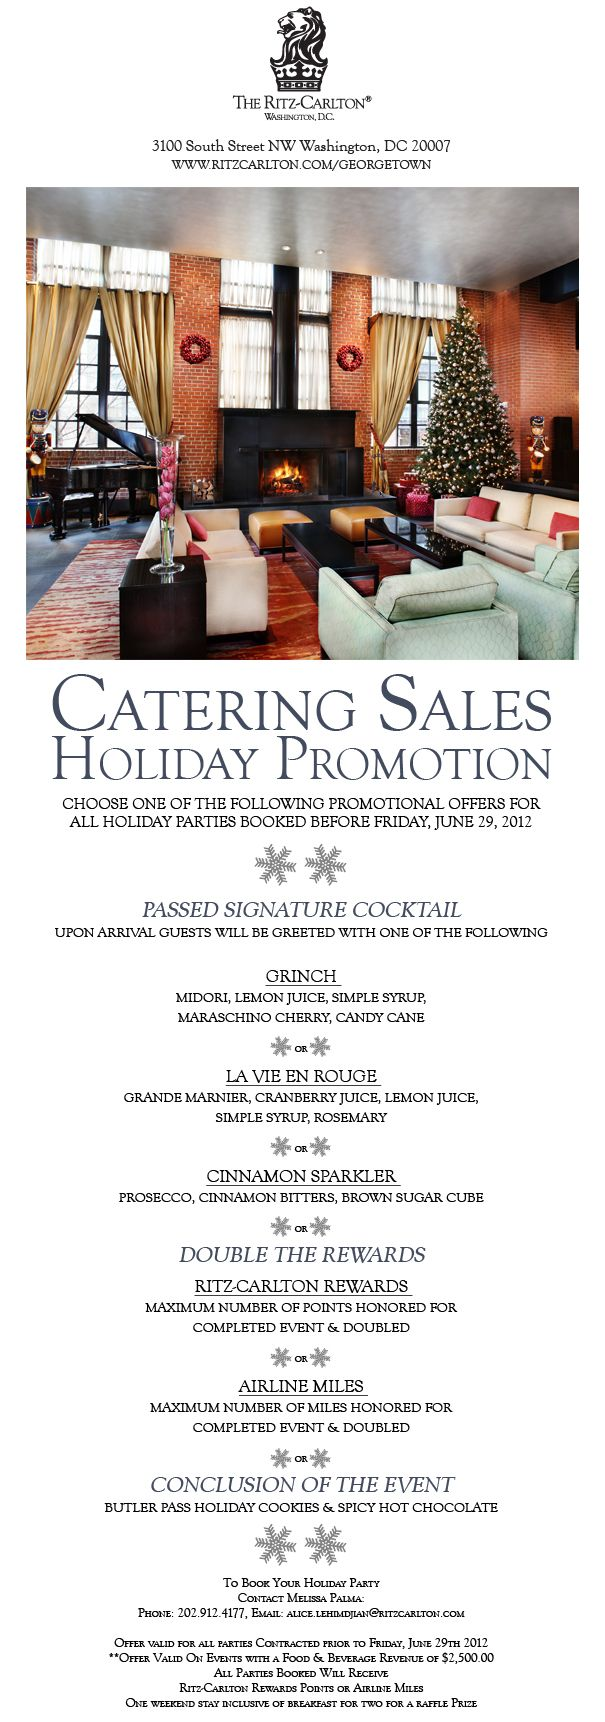 Holiday catering email for The Ritz Carlton Washington, D.C.